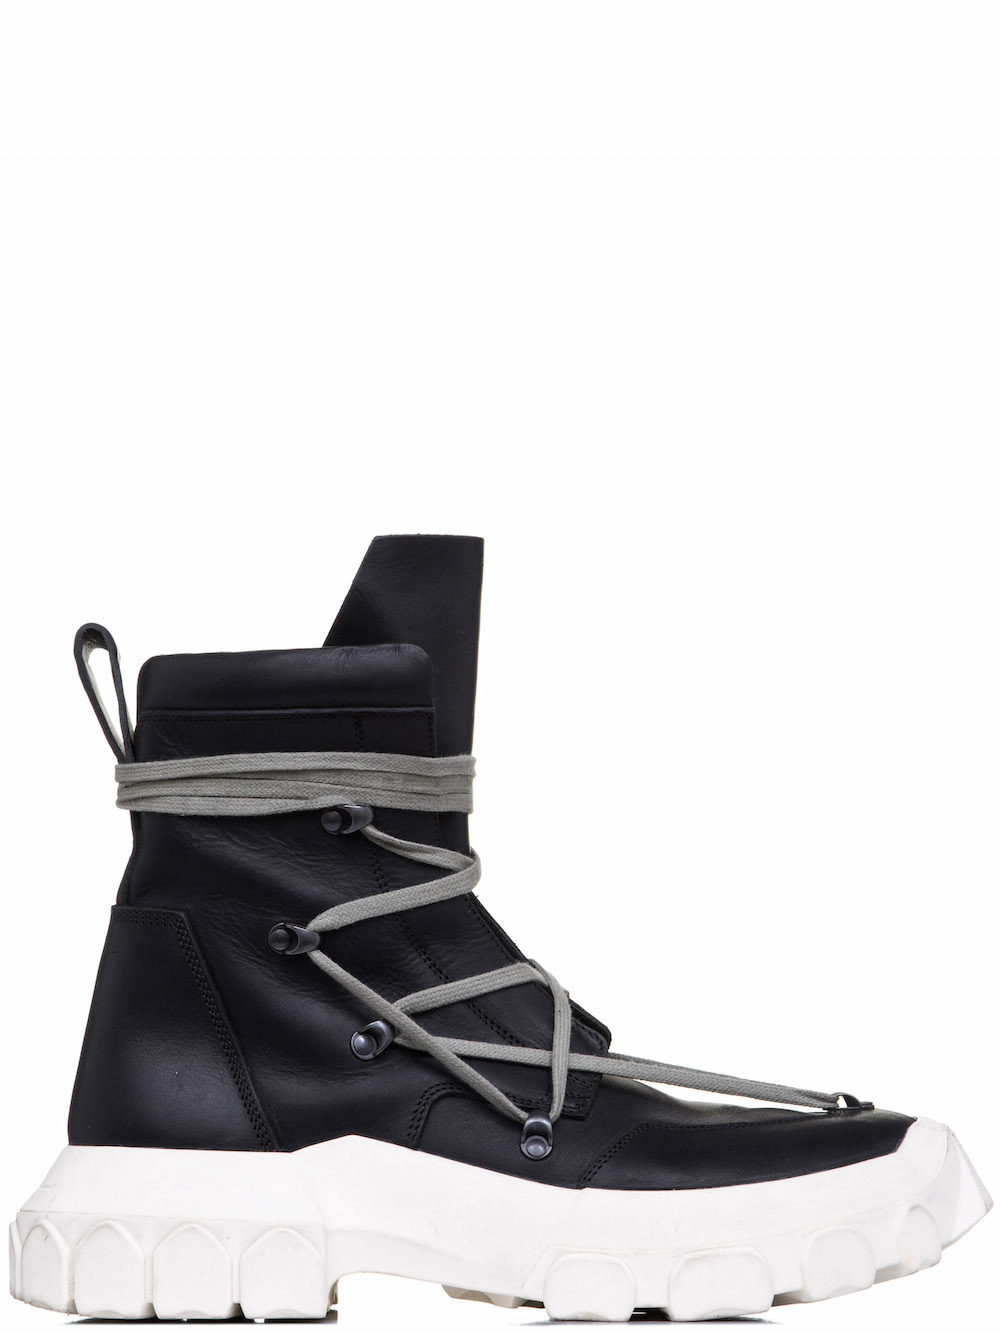 RICK OWENS OFFTHERUNWAY LACEUP HIKING BOOTS IN BLACK